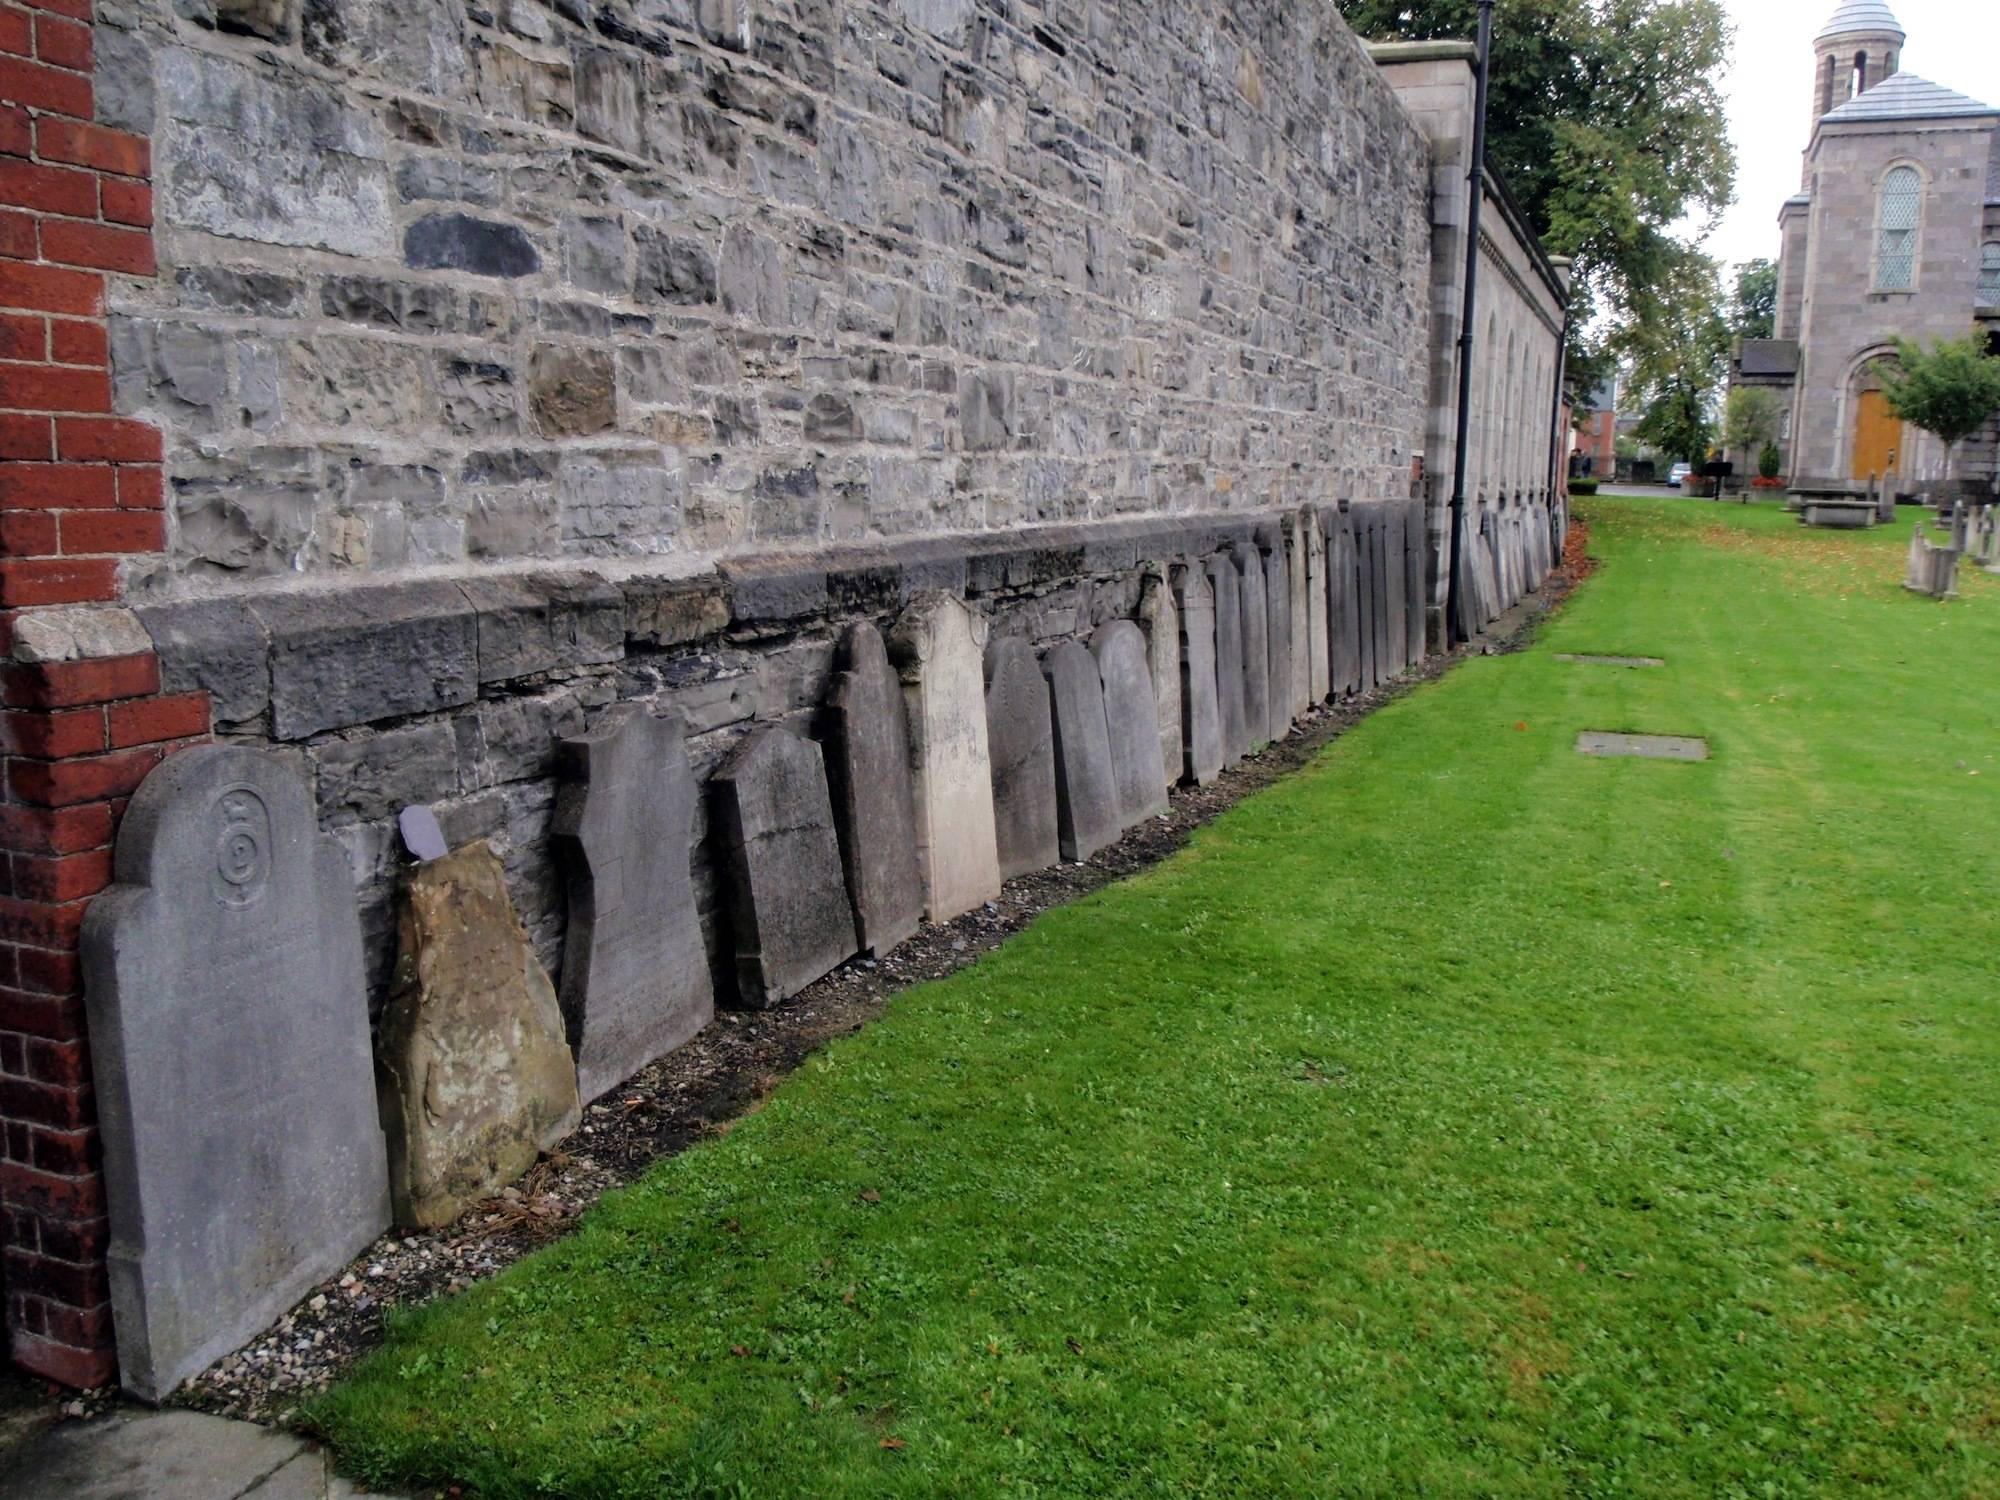 Older headstones leaning against the wall at Arbour Hill Cemetery. OPW.